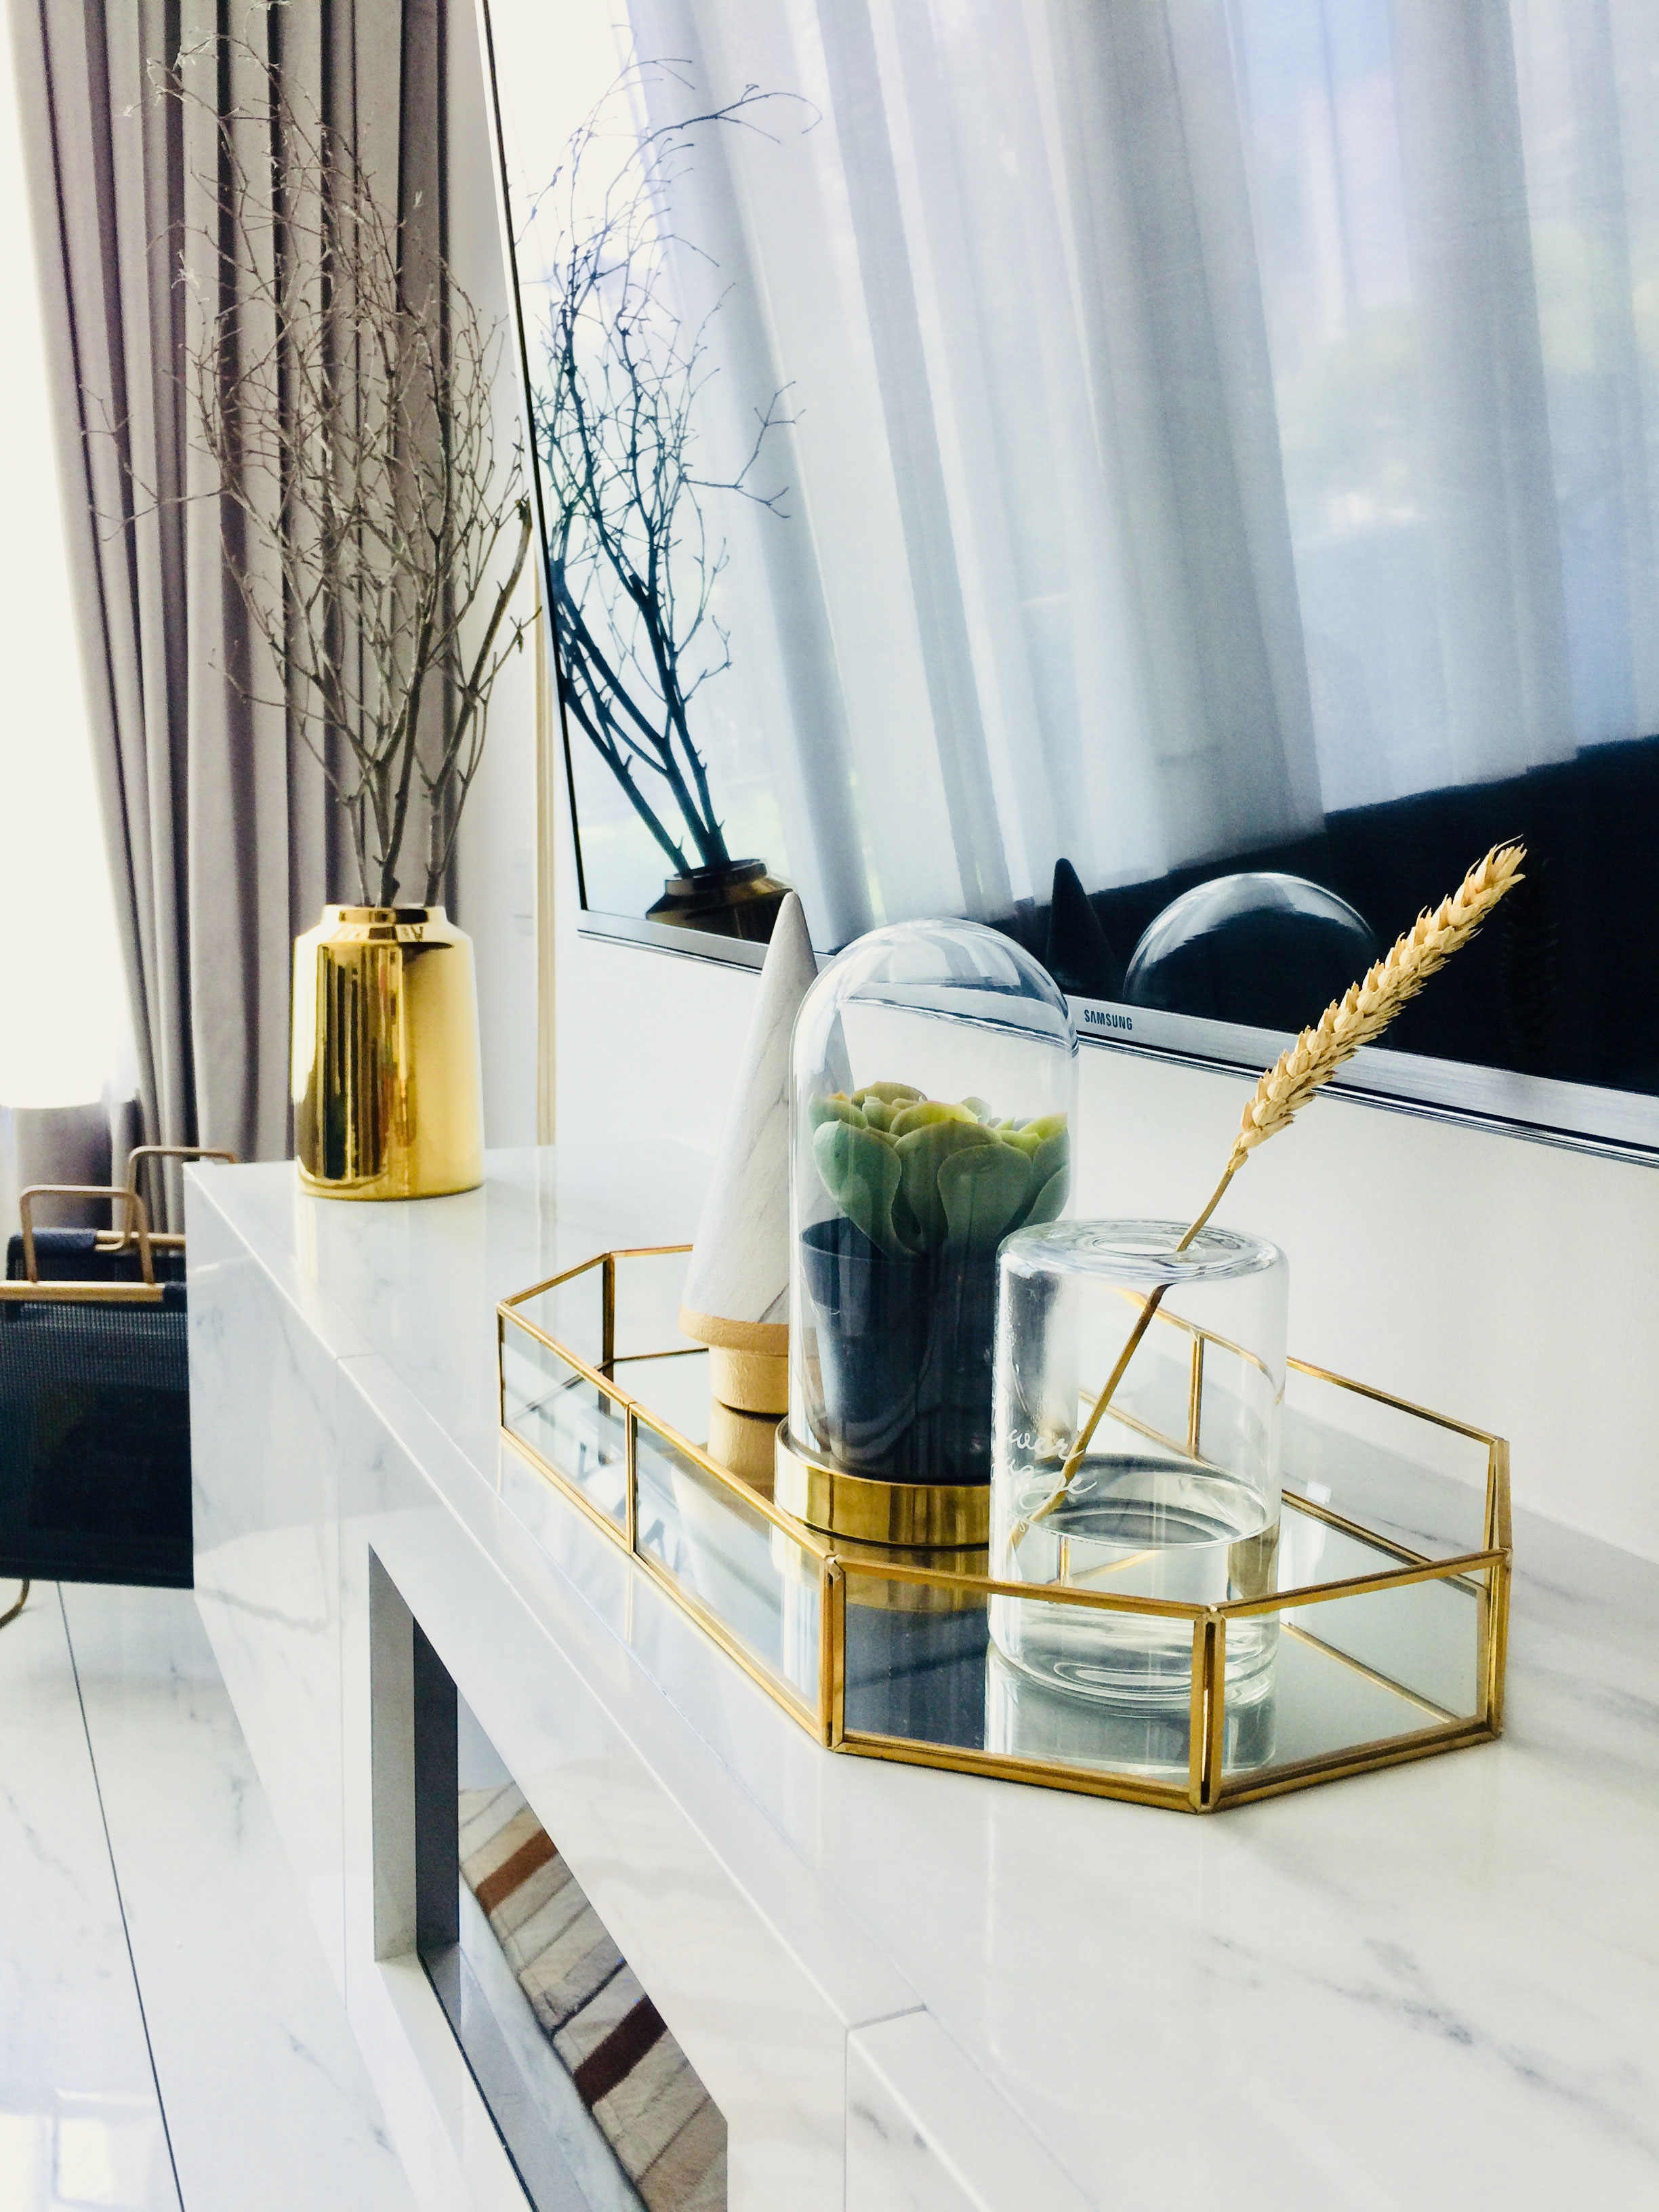 Decor accessories give the space its opulent touch.